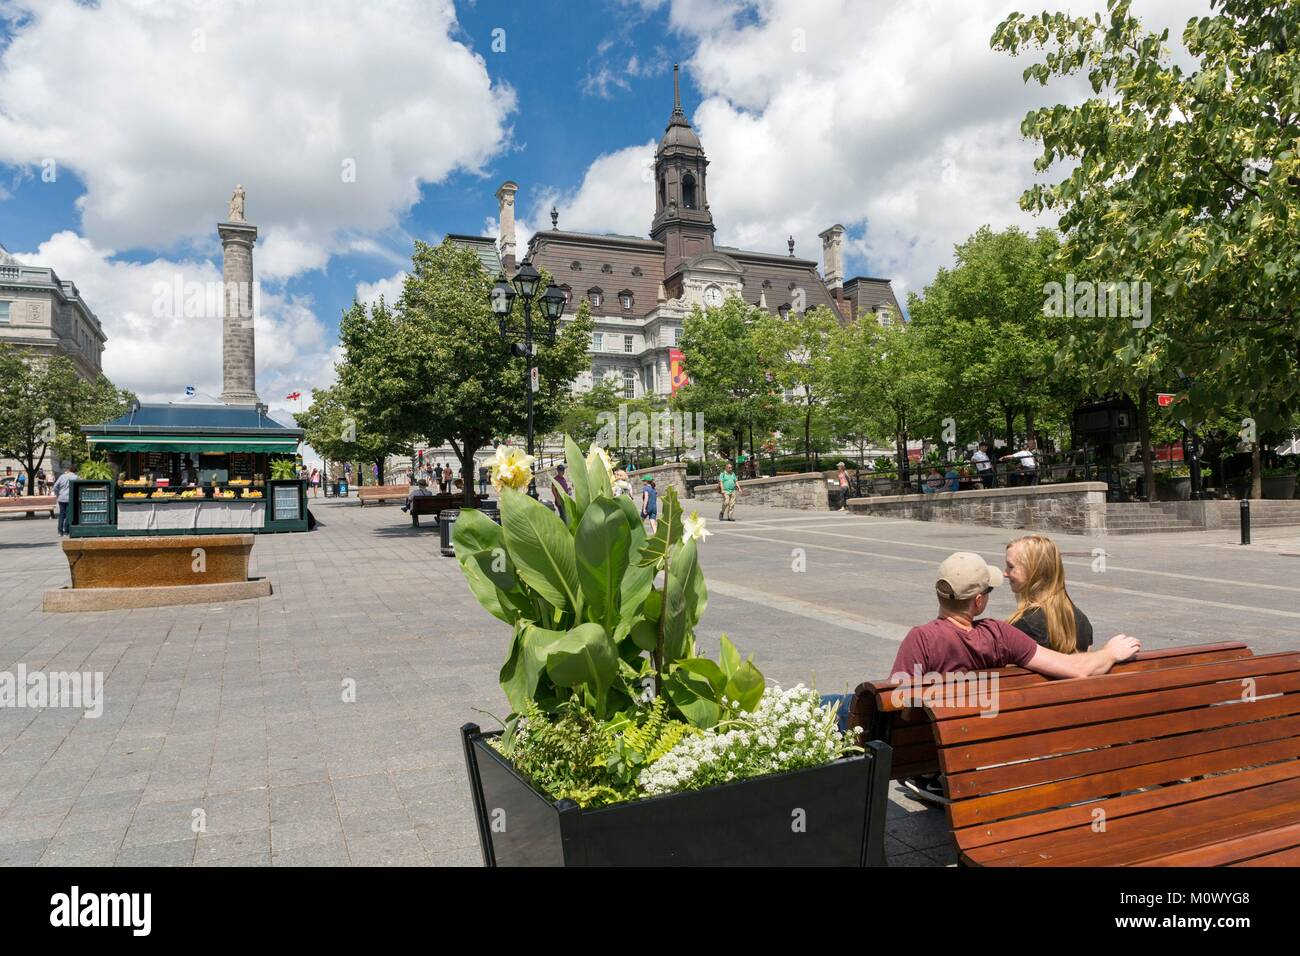 Canada,Quebec province,Montreal,Old Montreal,Place Jacques-Cartier and City Hall,couple on a Bench,Nelson Column - Stock Image